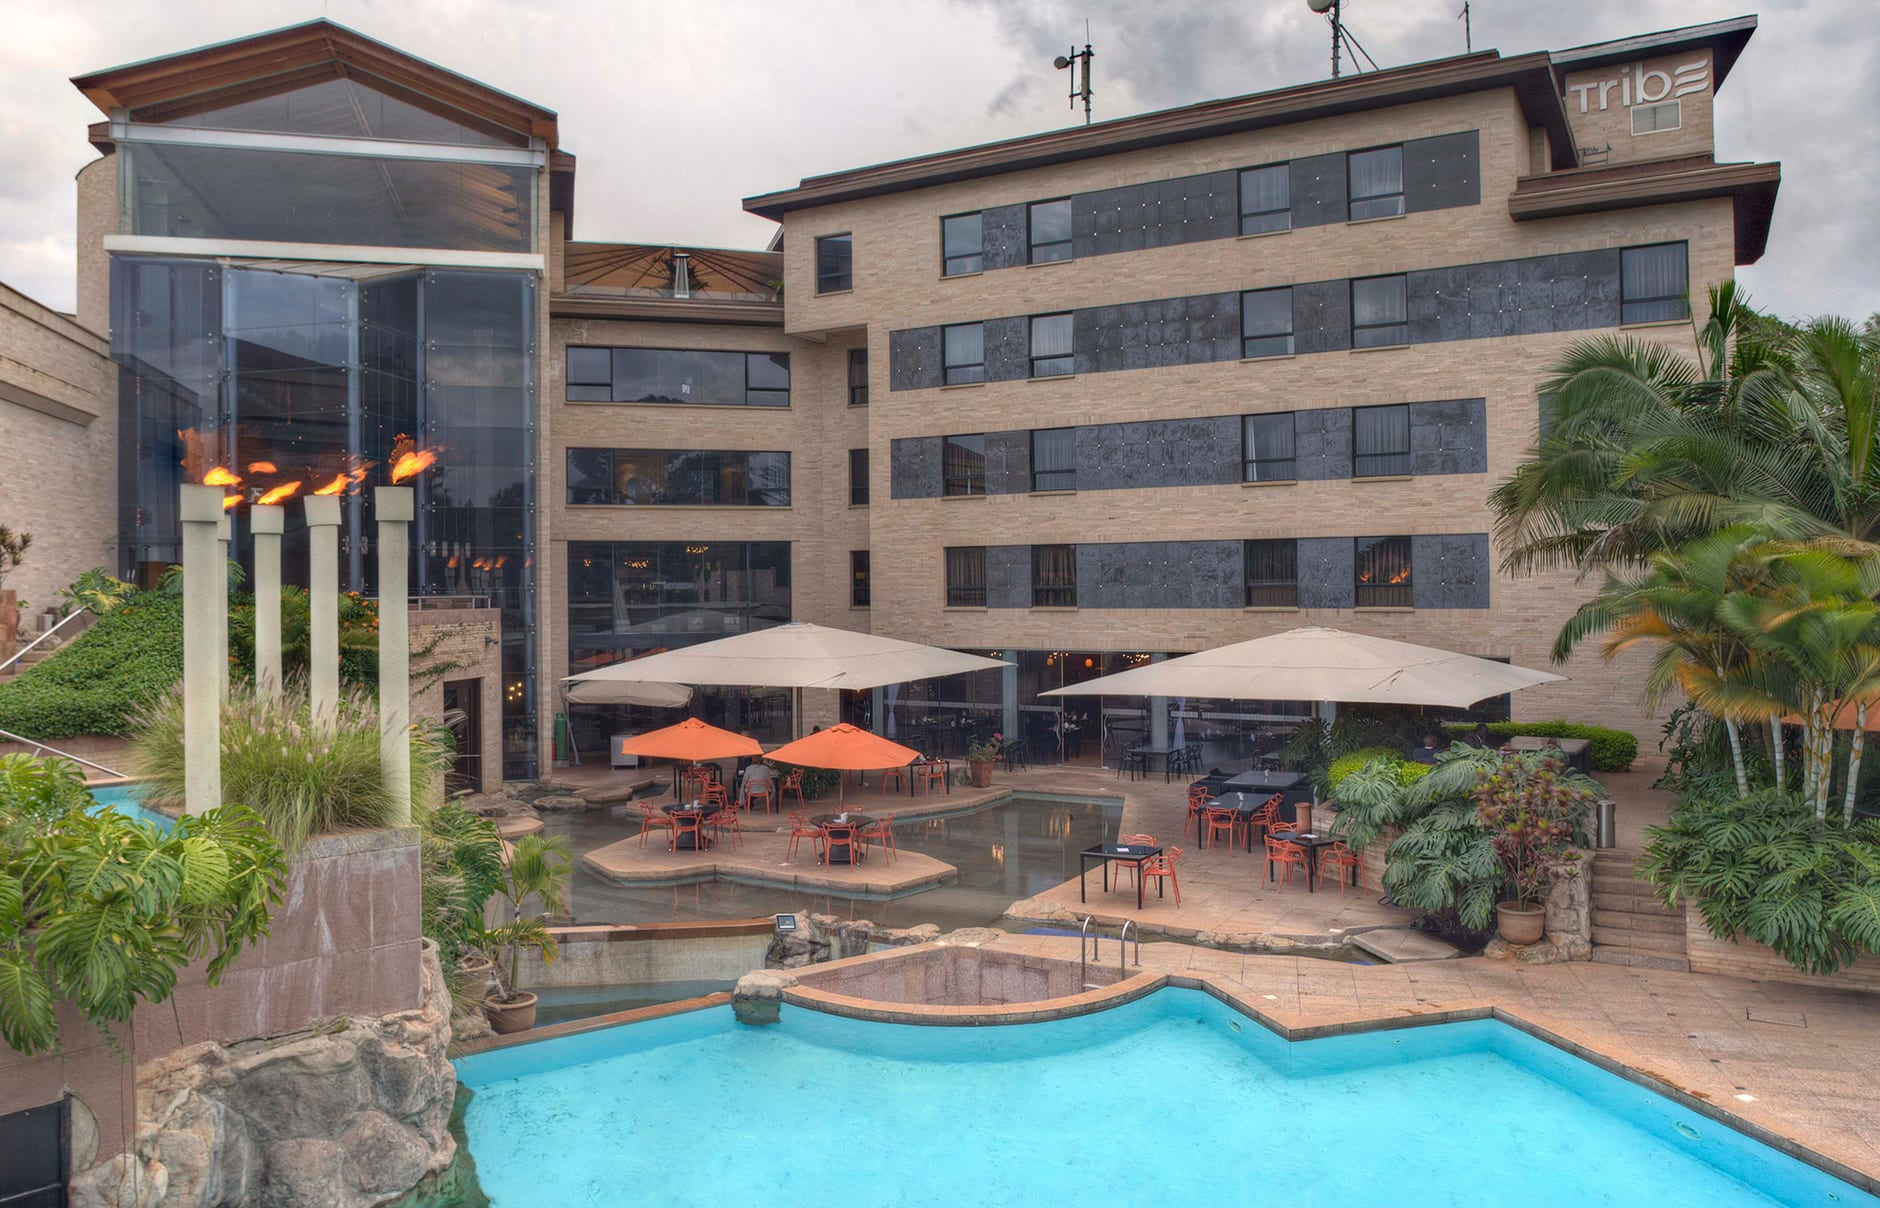 Tribe Hotel Nairobi, Kenya. Hotel Review by TravelPlusStyle. Photo © Tribe Hotel